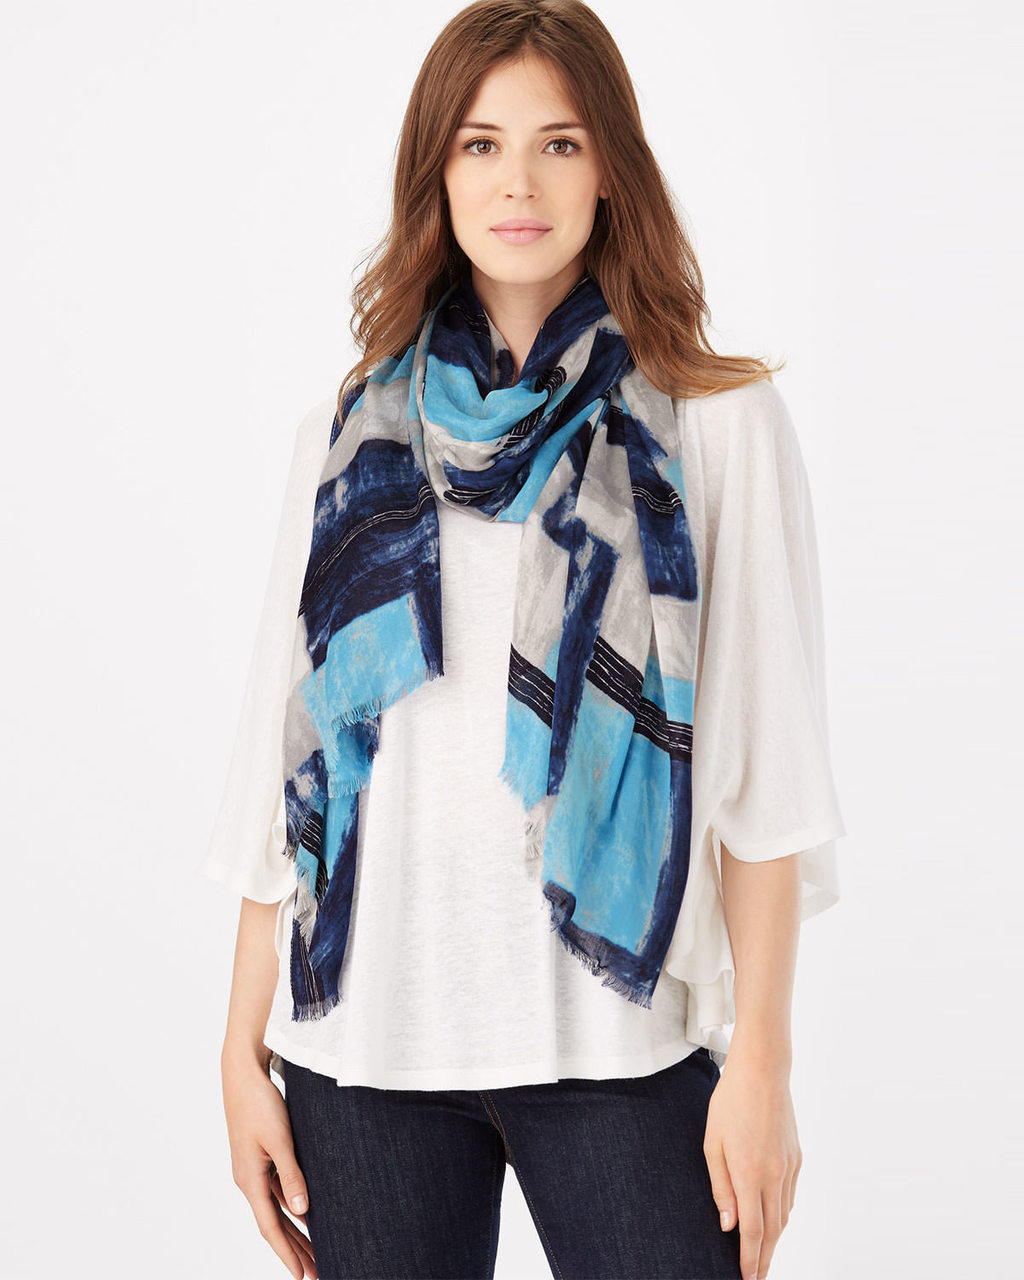 Bella Brushstroke Scarf - secondary colour: navy; predominant colour: turquoise; occasions: casual, creative work; type of pattern: light; style: regular; size: standard; material: fabric; pattern: florals; season: s/s 2016; wardrobe: highlight